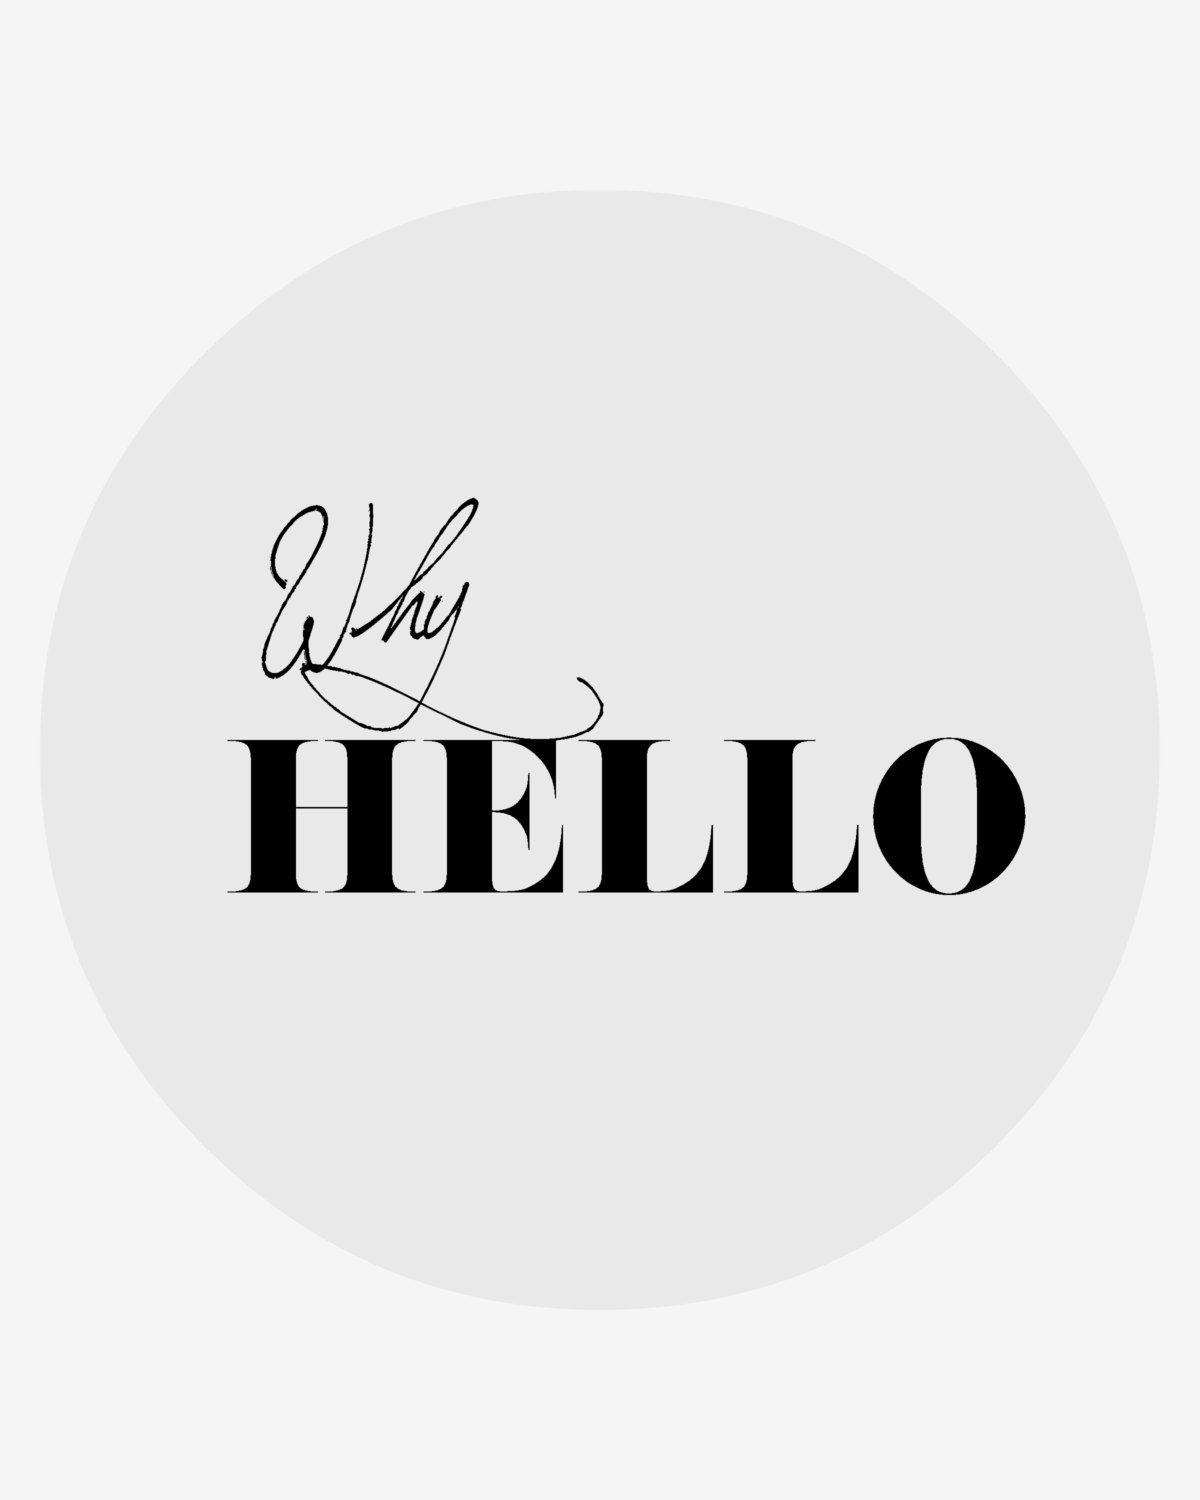 Why hello print digital download printable wall art typography